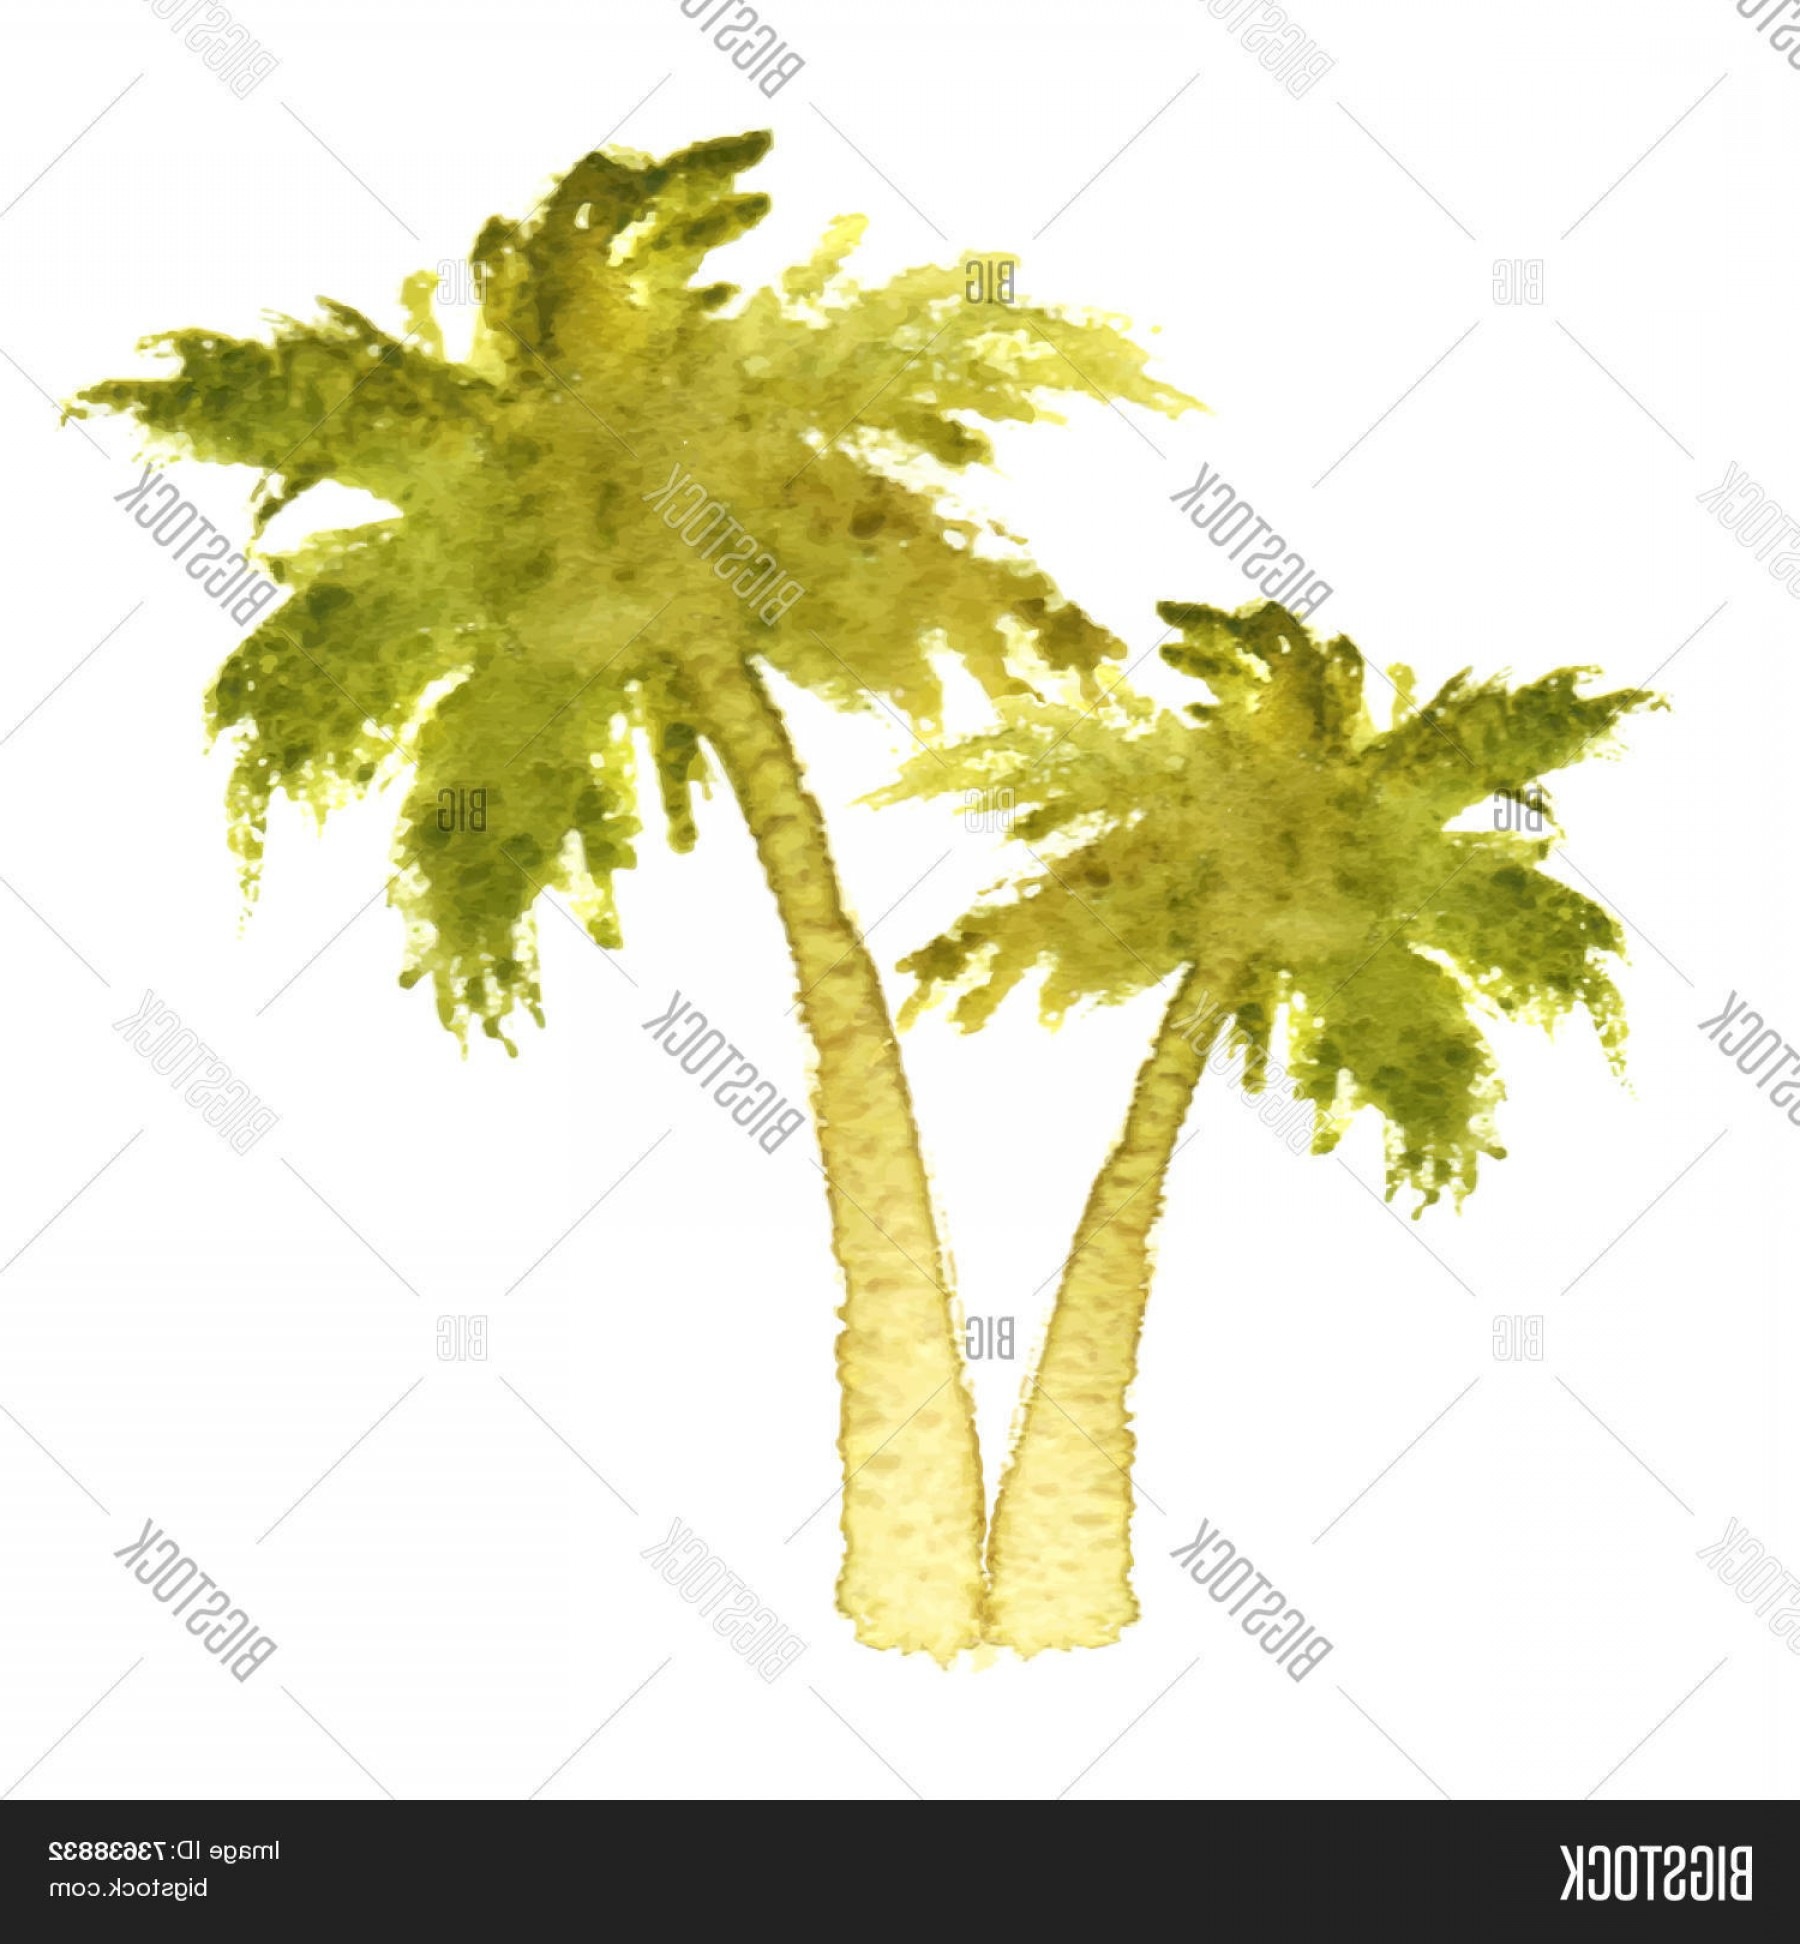 Watercolor Palm Tree Vector: Stock Vector Watercolor Palm Trees Over White Background